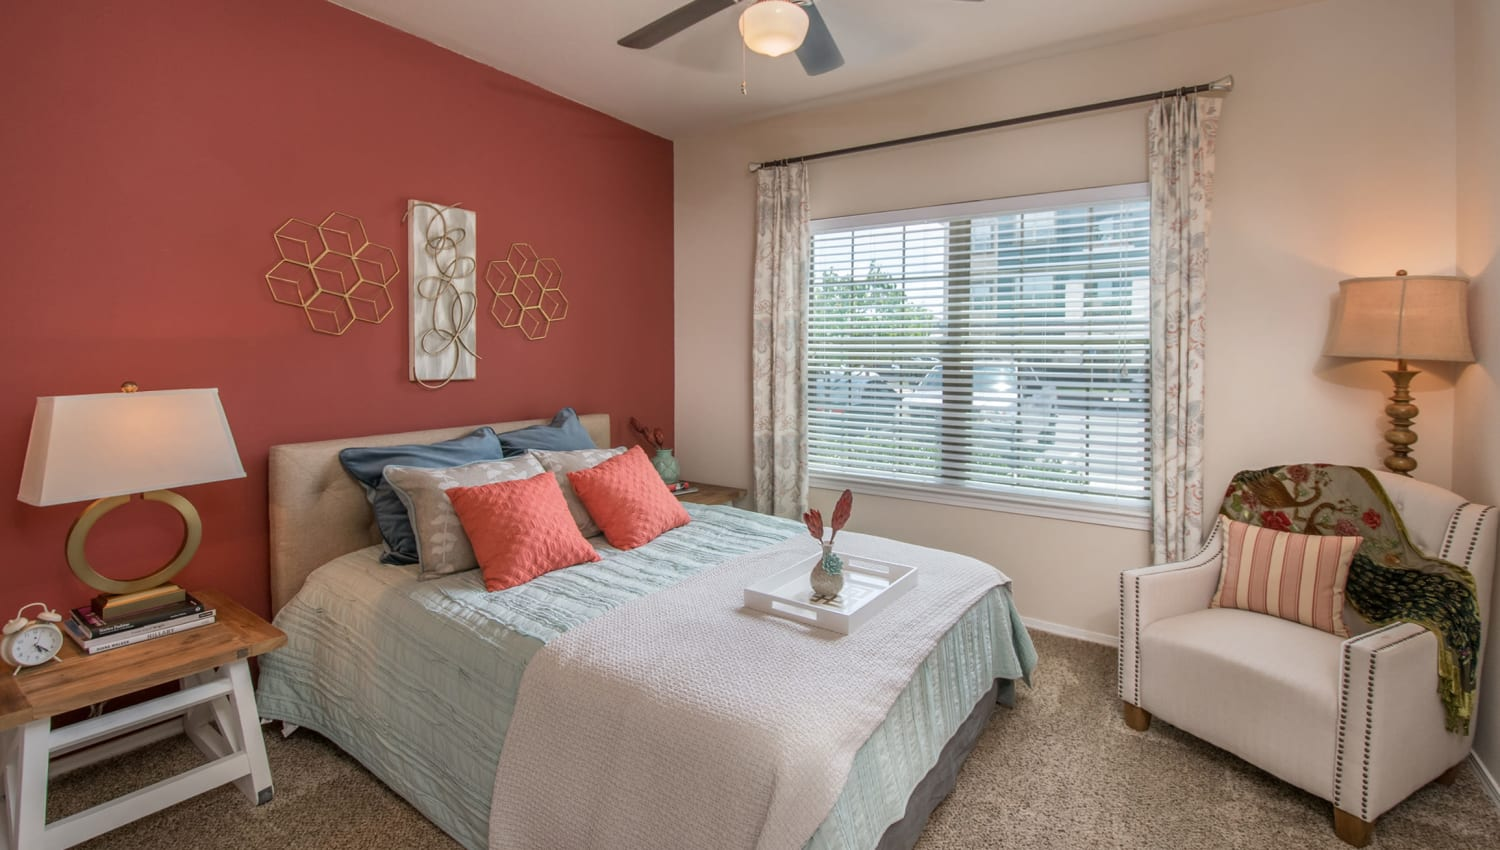 Ceiling fan and plush carpeting in the master bedroom of a model home at Carrington Oaks in Buda, Texas